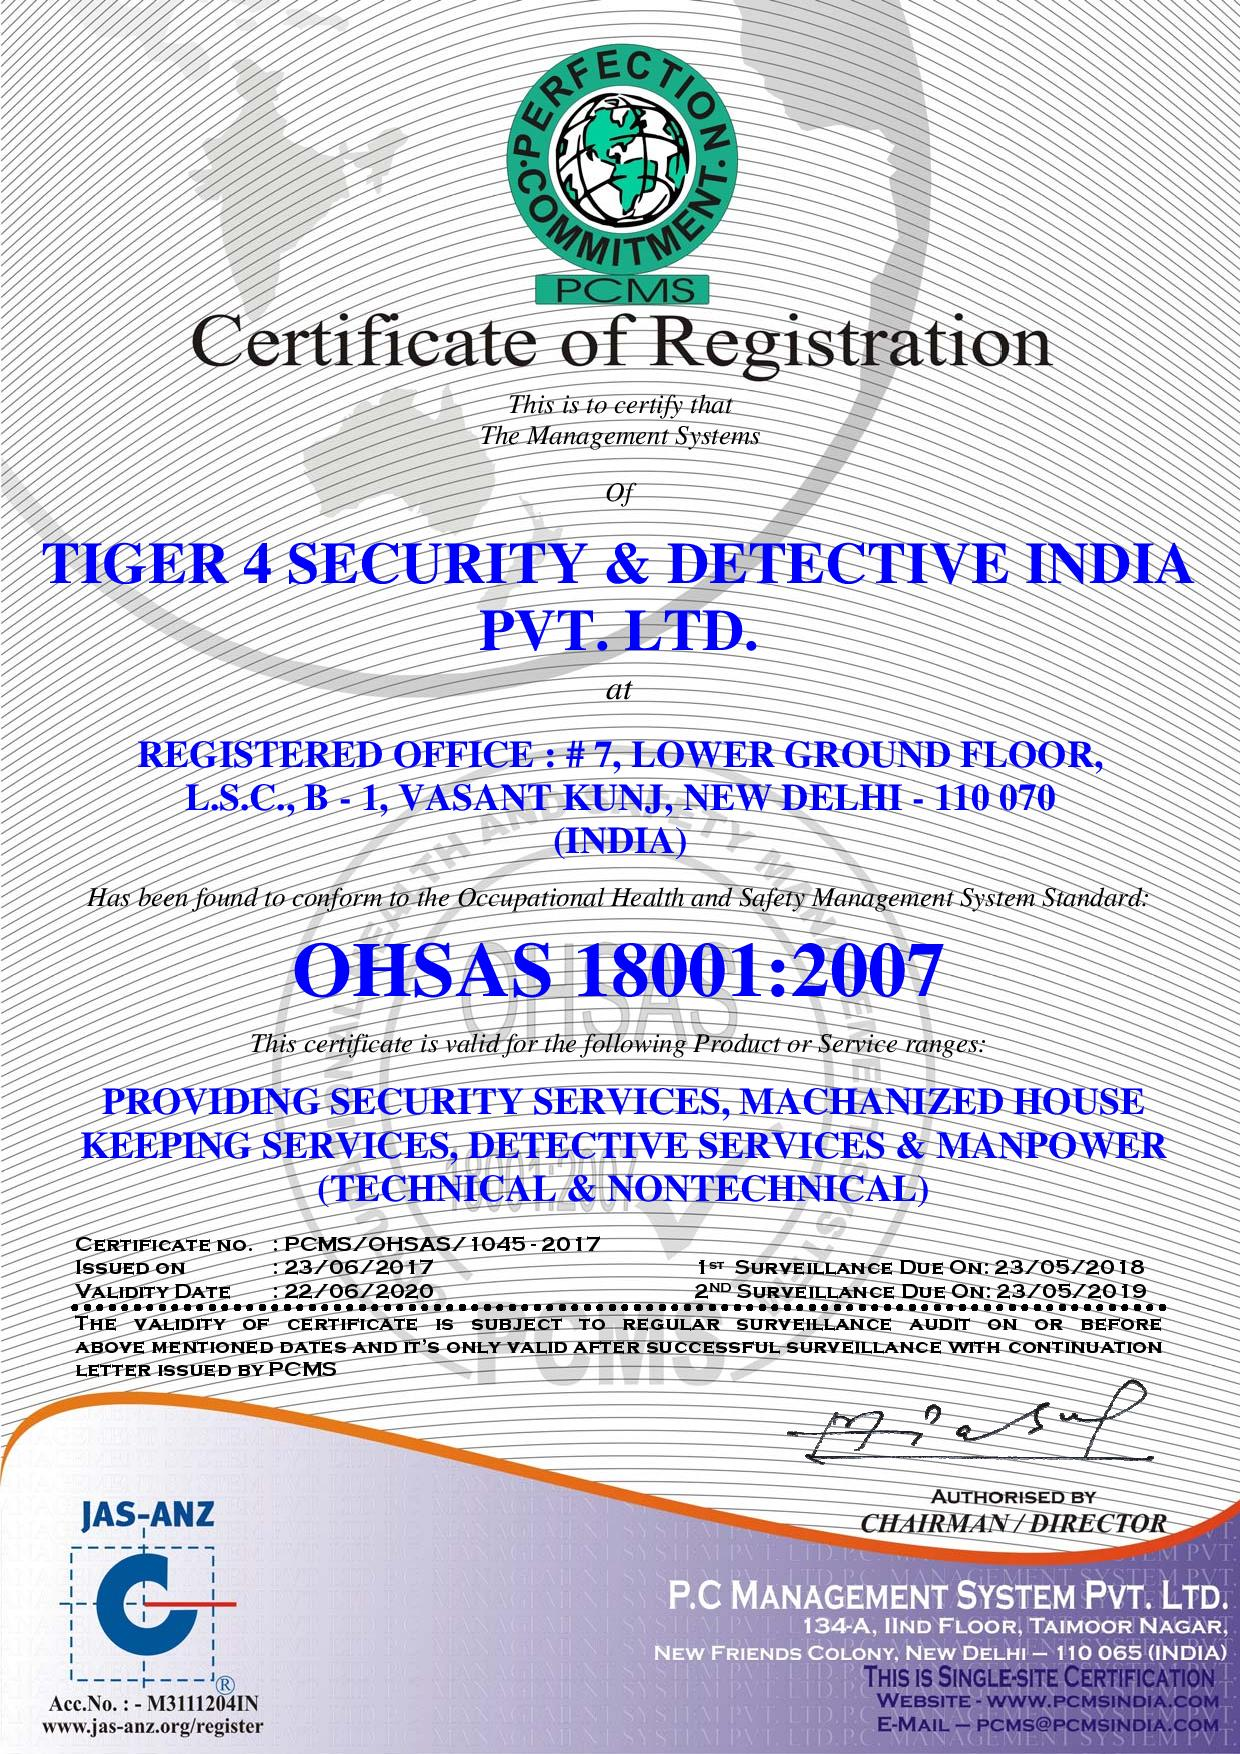 TIGER 4 SECURITY & DETECTIVE INDIA PVT. LTD - 18001-page-001